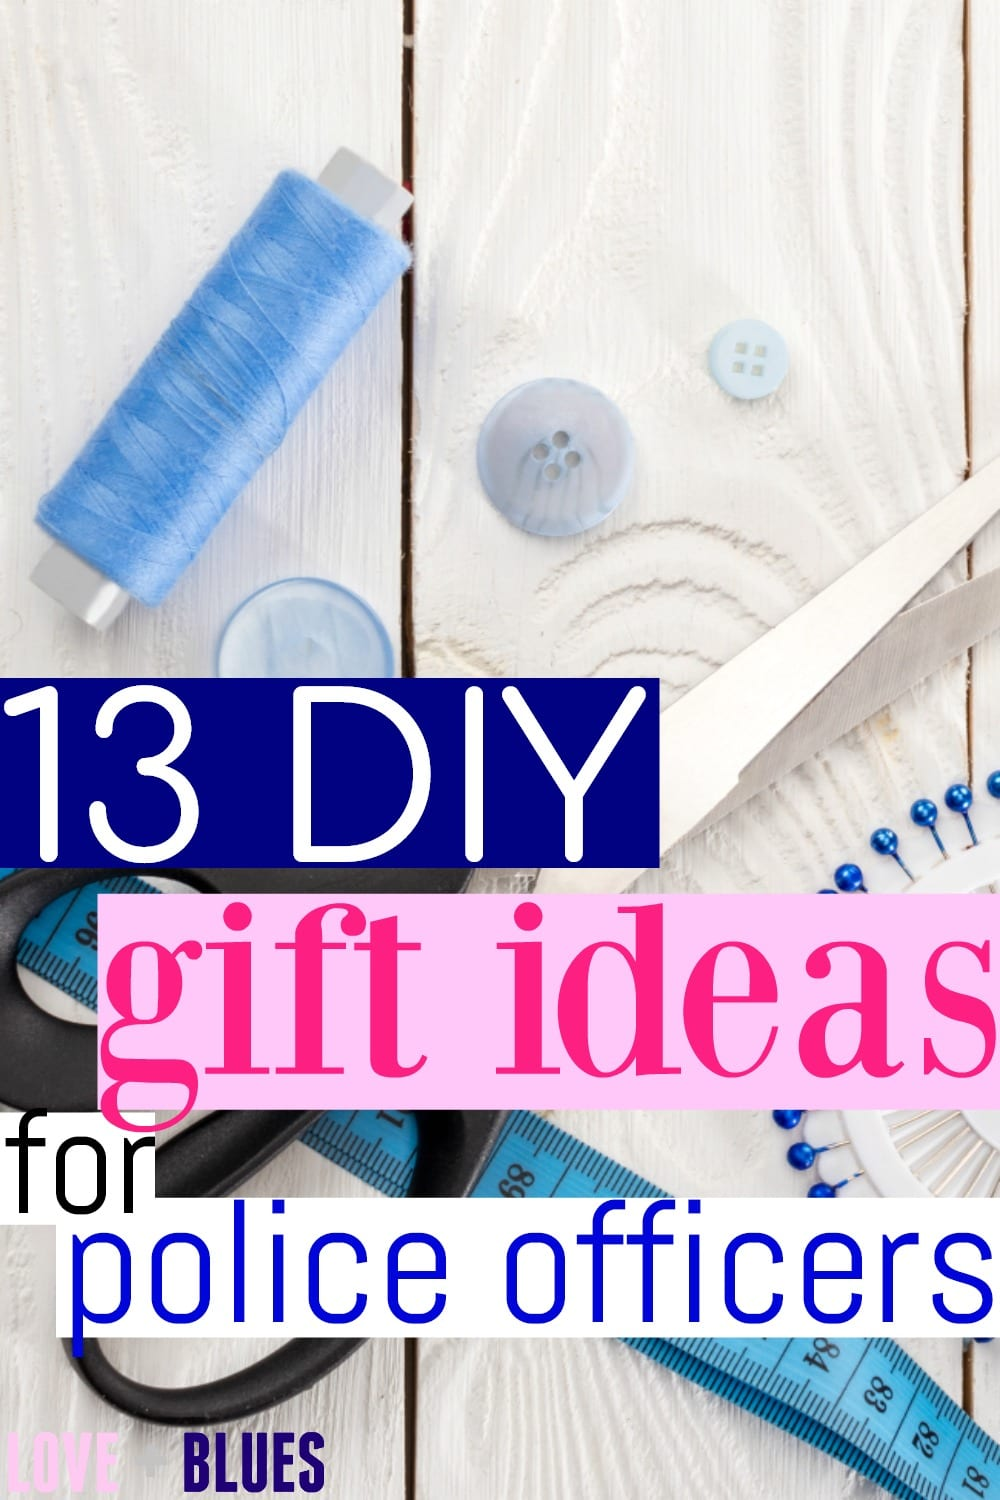 These are GREAT ideas! I love DIY gifts and couldn't find any I liked for my officer husband. I want to try all these!